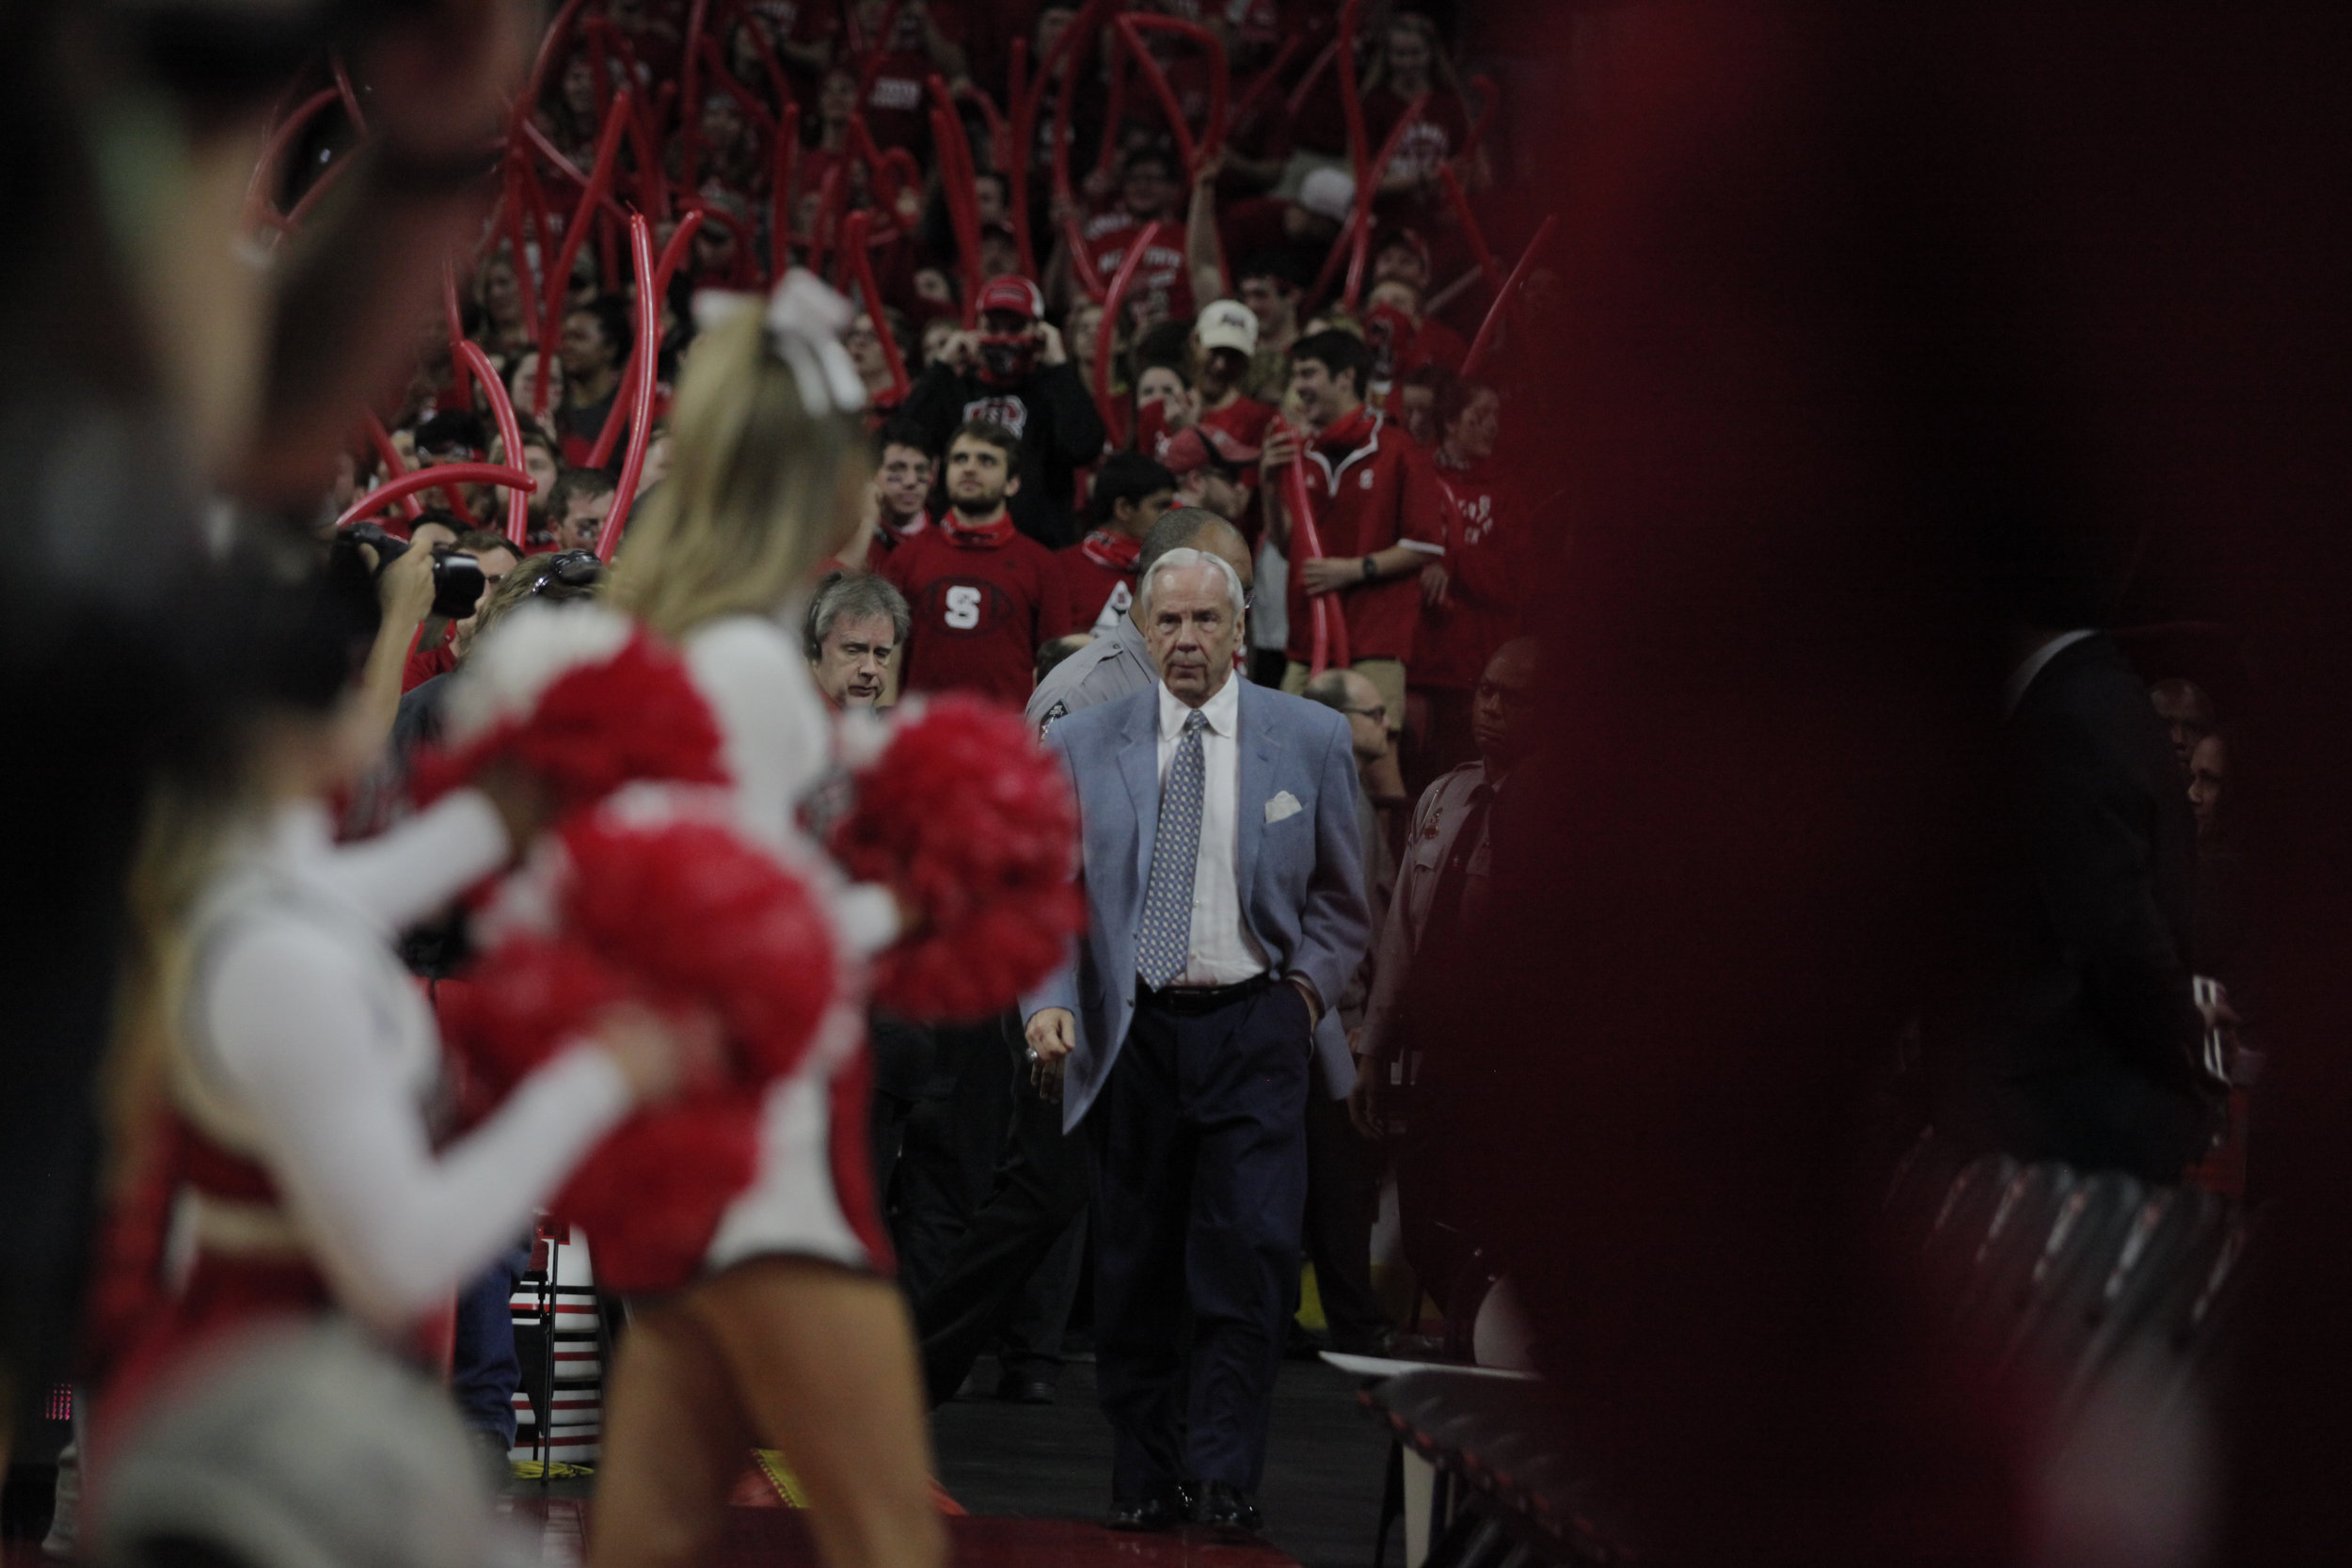 UNC head coach takes the court in a sea of red at PNC Arena ahead of the UNC vs. NC State game.